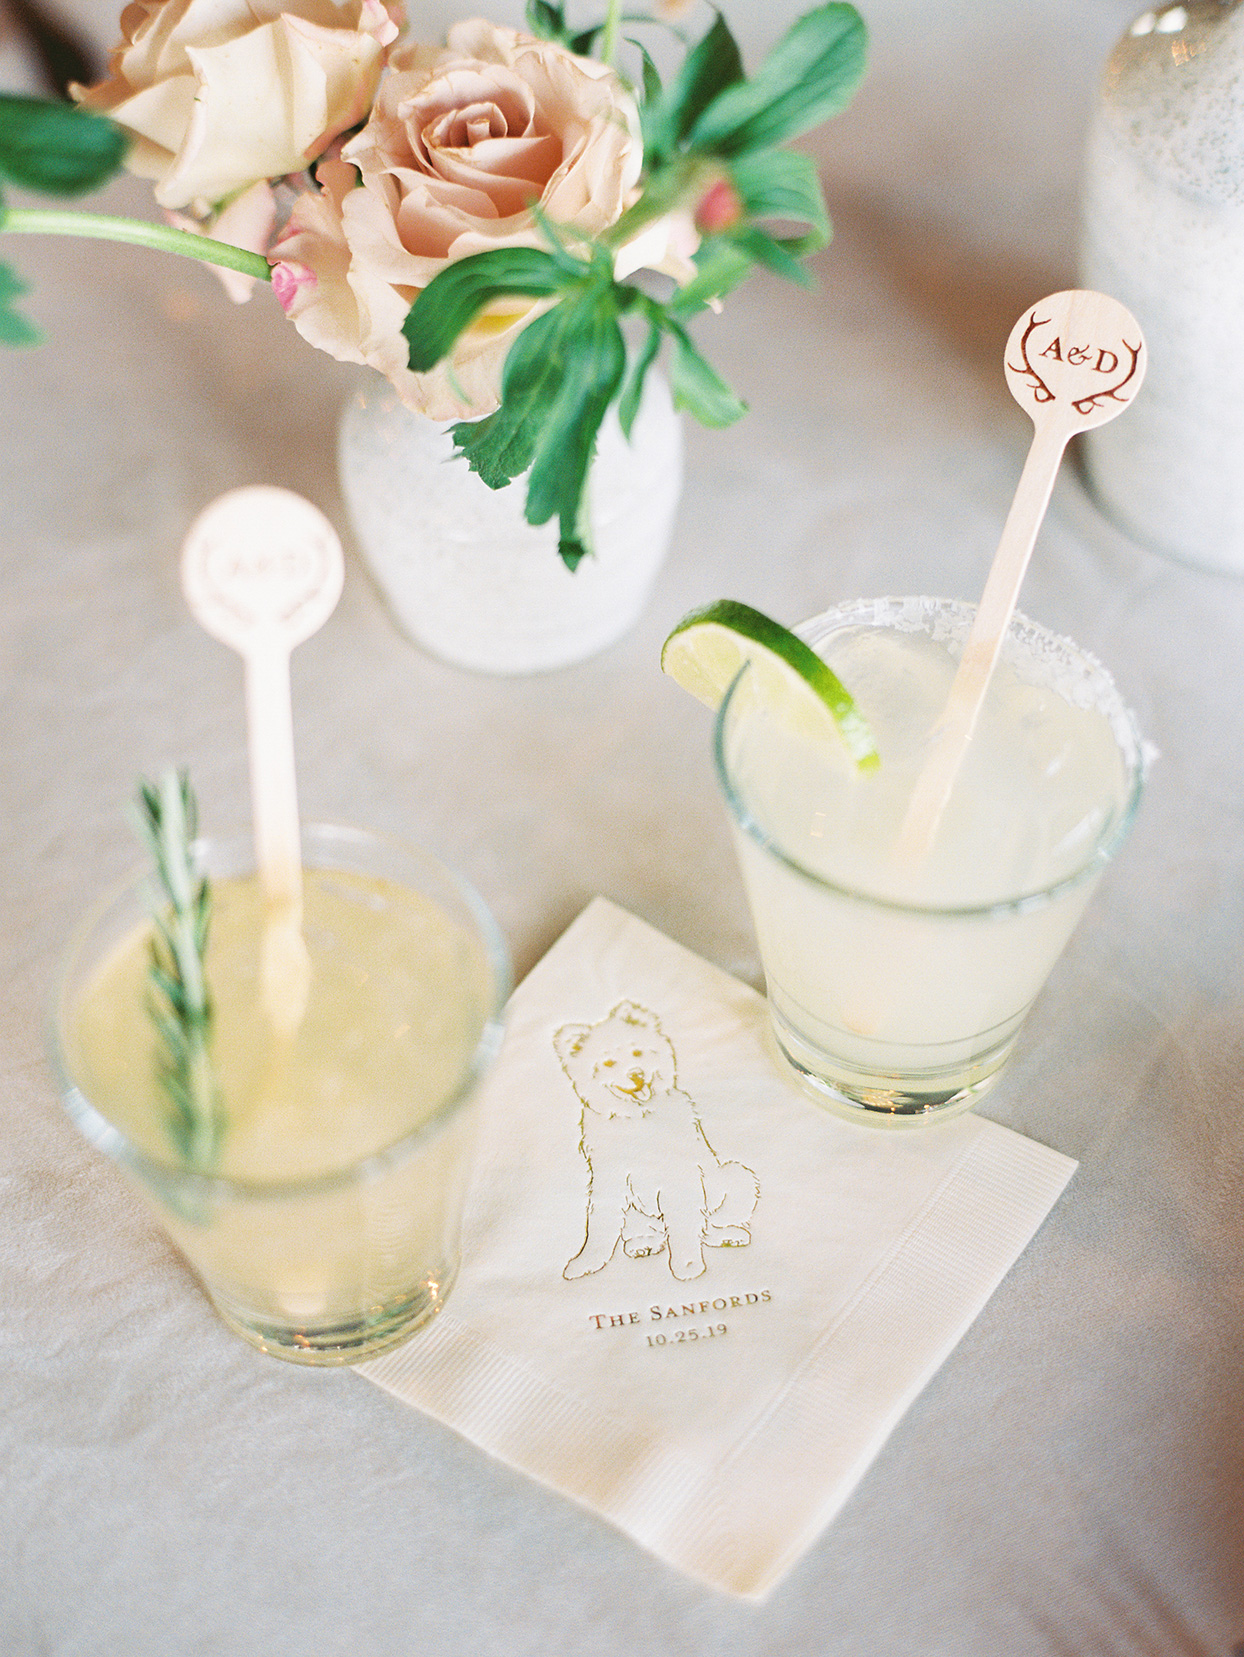 alexandra david wedding cocktails with personalized dog napkin